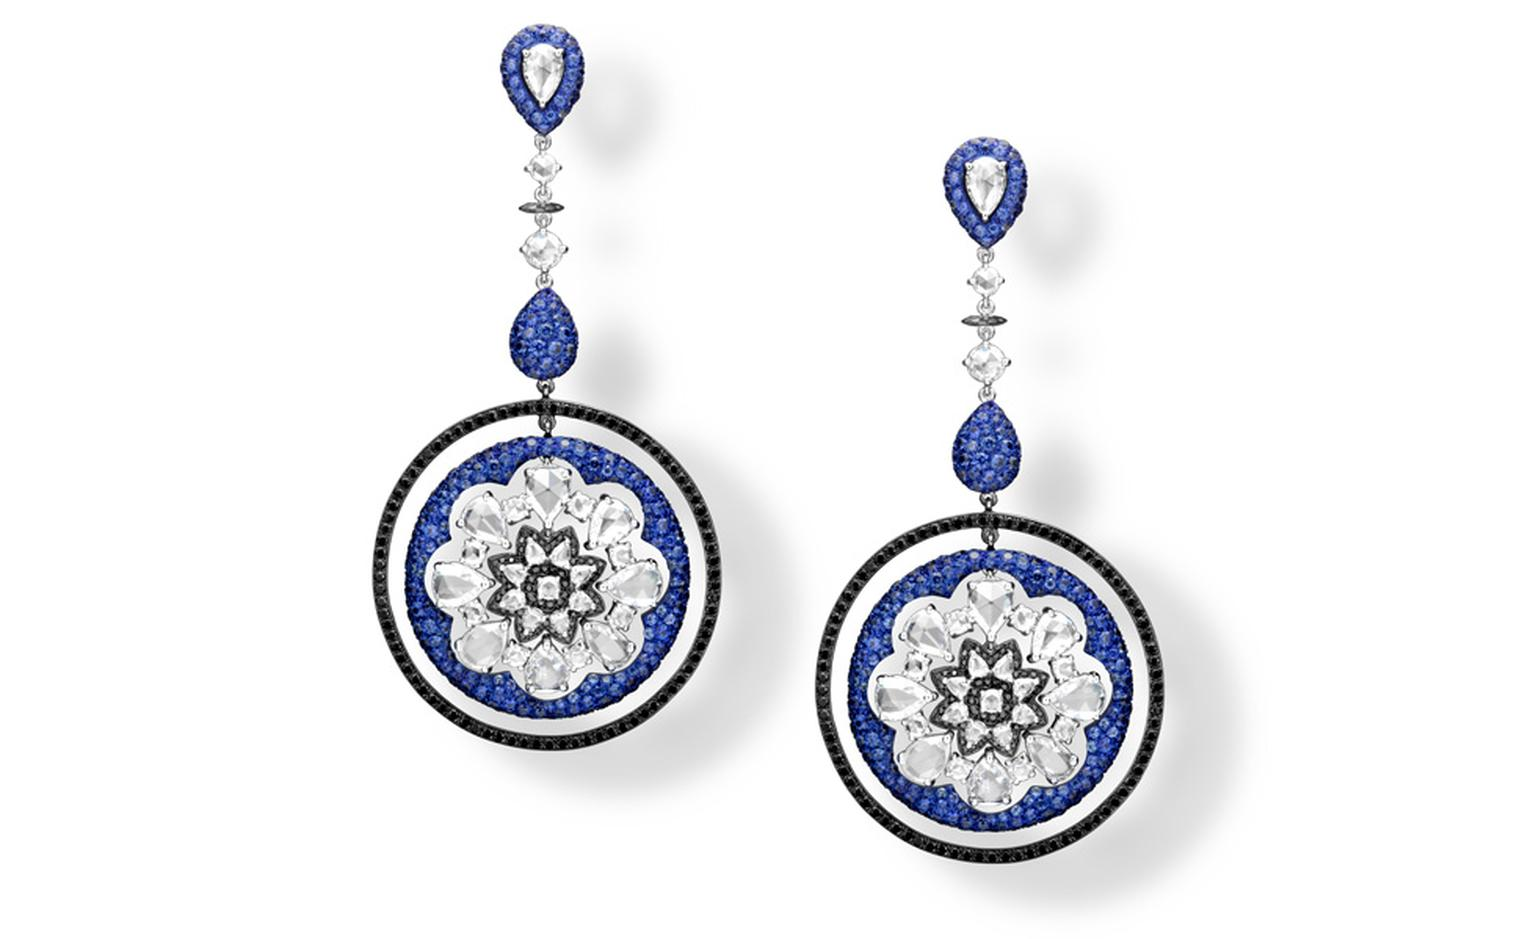 Dream Catcher earrings with sapphires and diamonds by Carnet, designed by Michelle Ong.